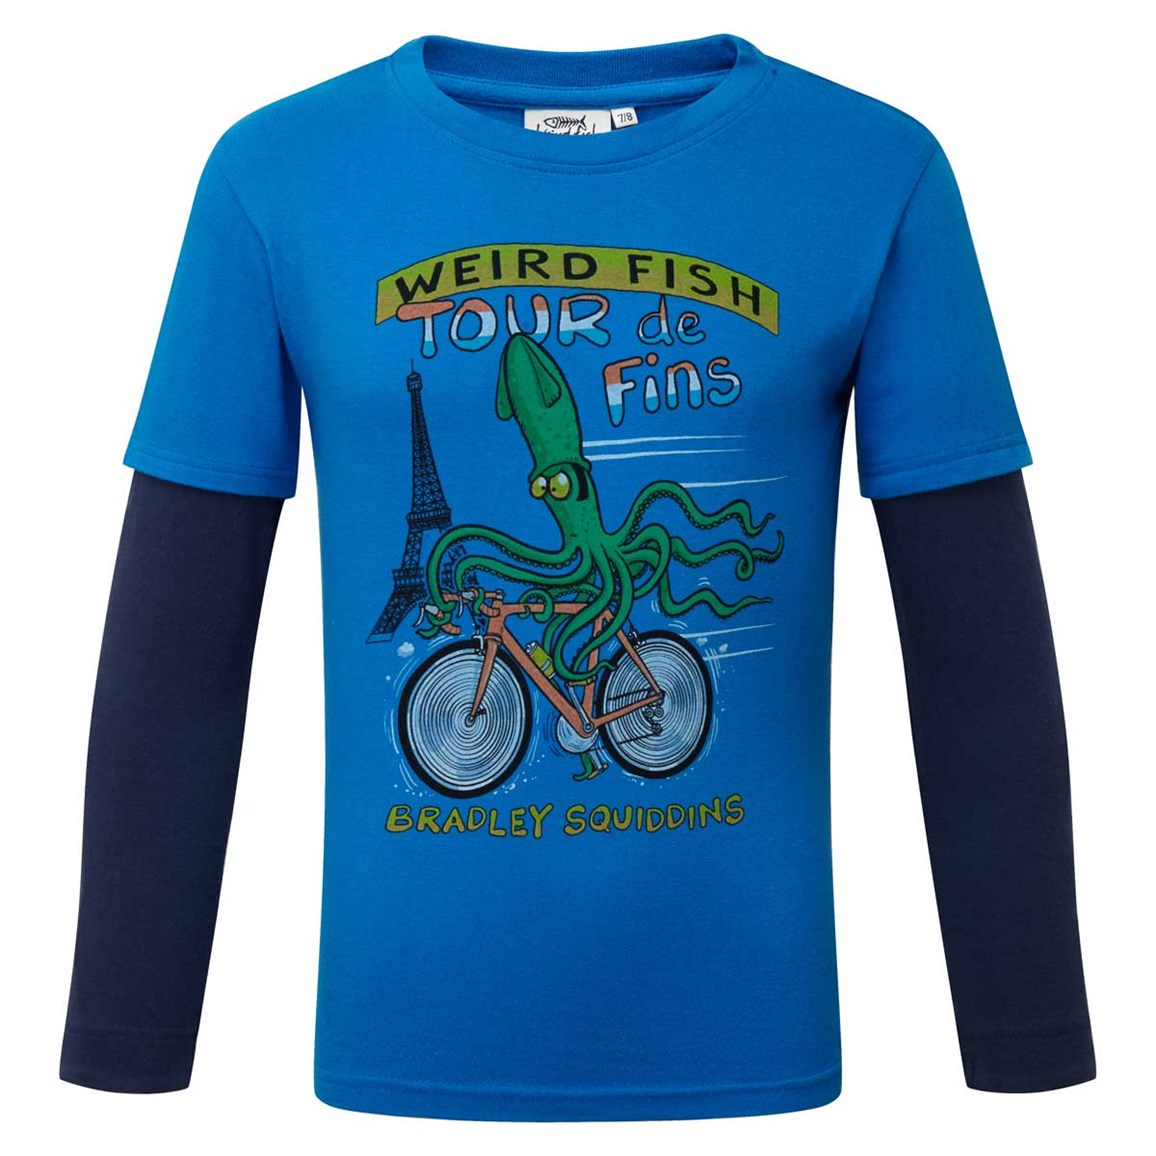 Weird Fish Squid Long Sleeve Graphic Print T-Shirt Skydiver Blue Size 11-12